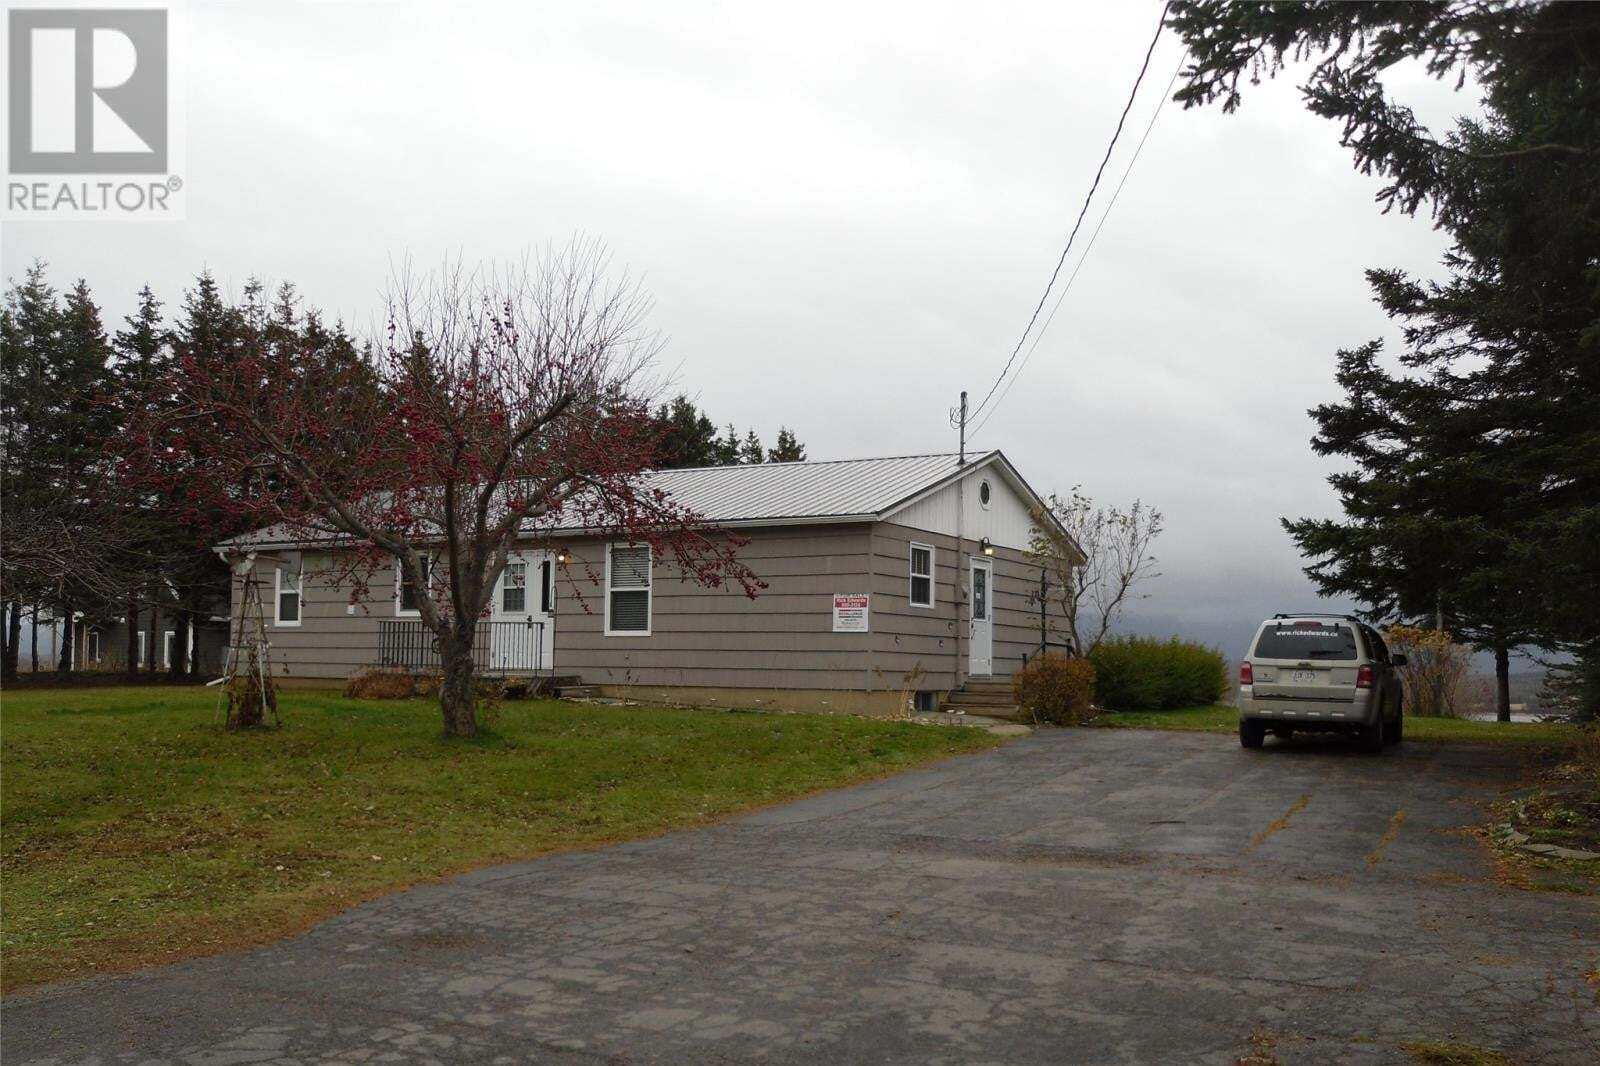 House for sale at 0 Main St Codroy Valley Newfoundland - MLS: 1207240